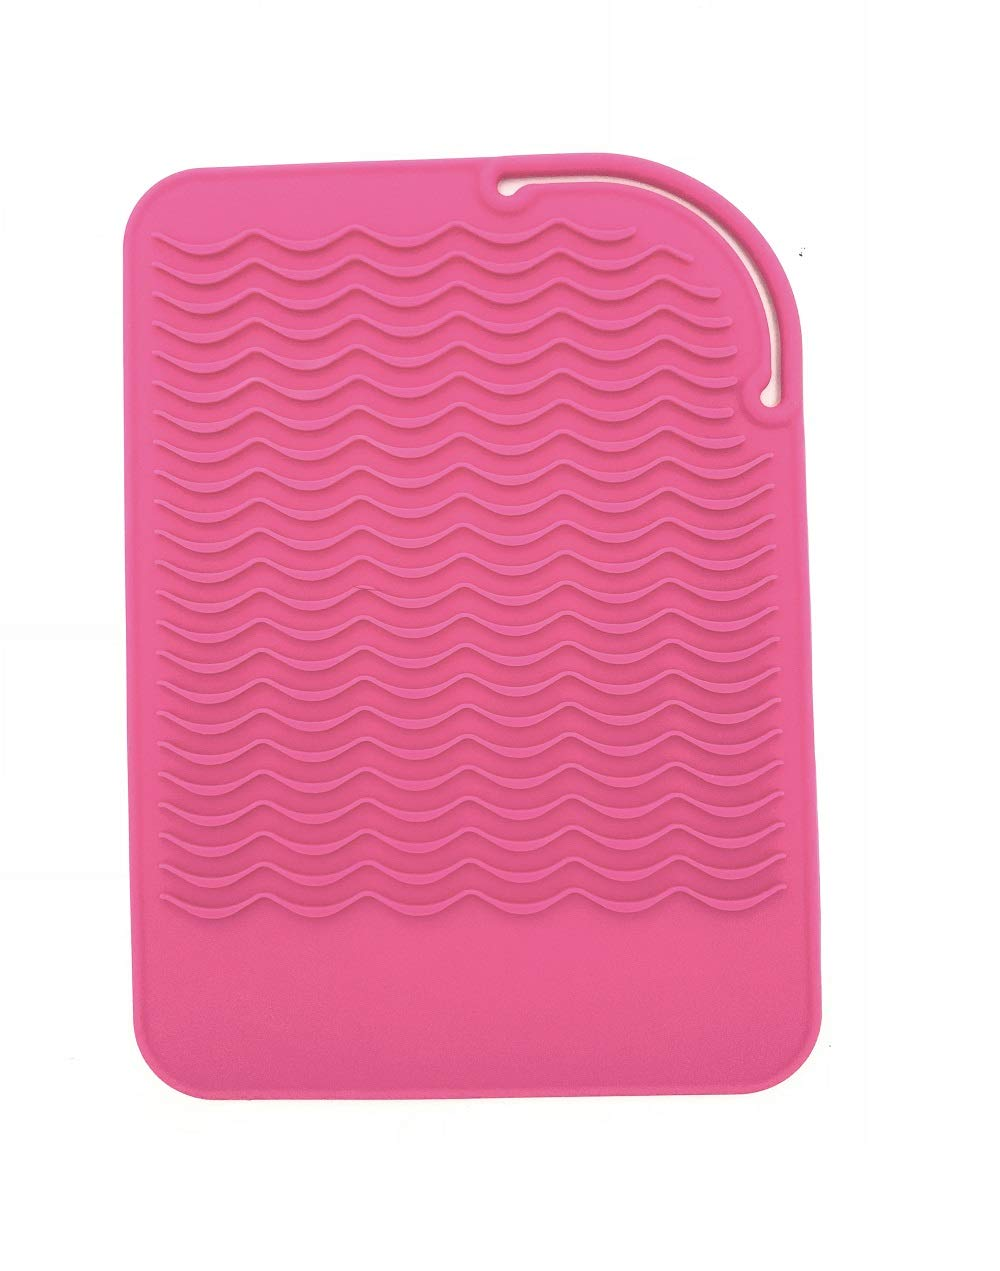 """Heat Resistant Mat for Curling Irons, Hair Straightener, Flat Irons and Hair Styling Tools 9"""" x 6.5"""", Food Grade Silicone, Pink: Beauty"""